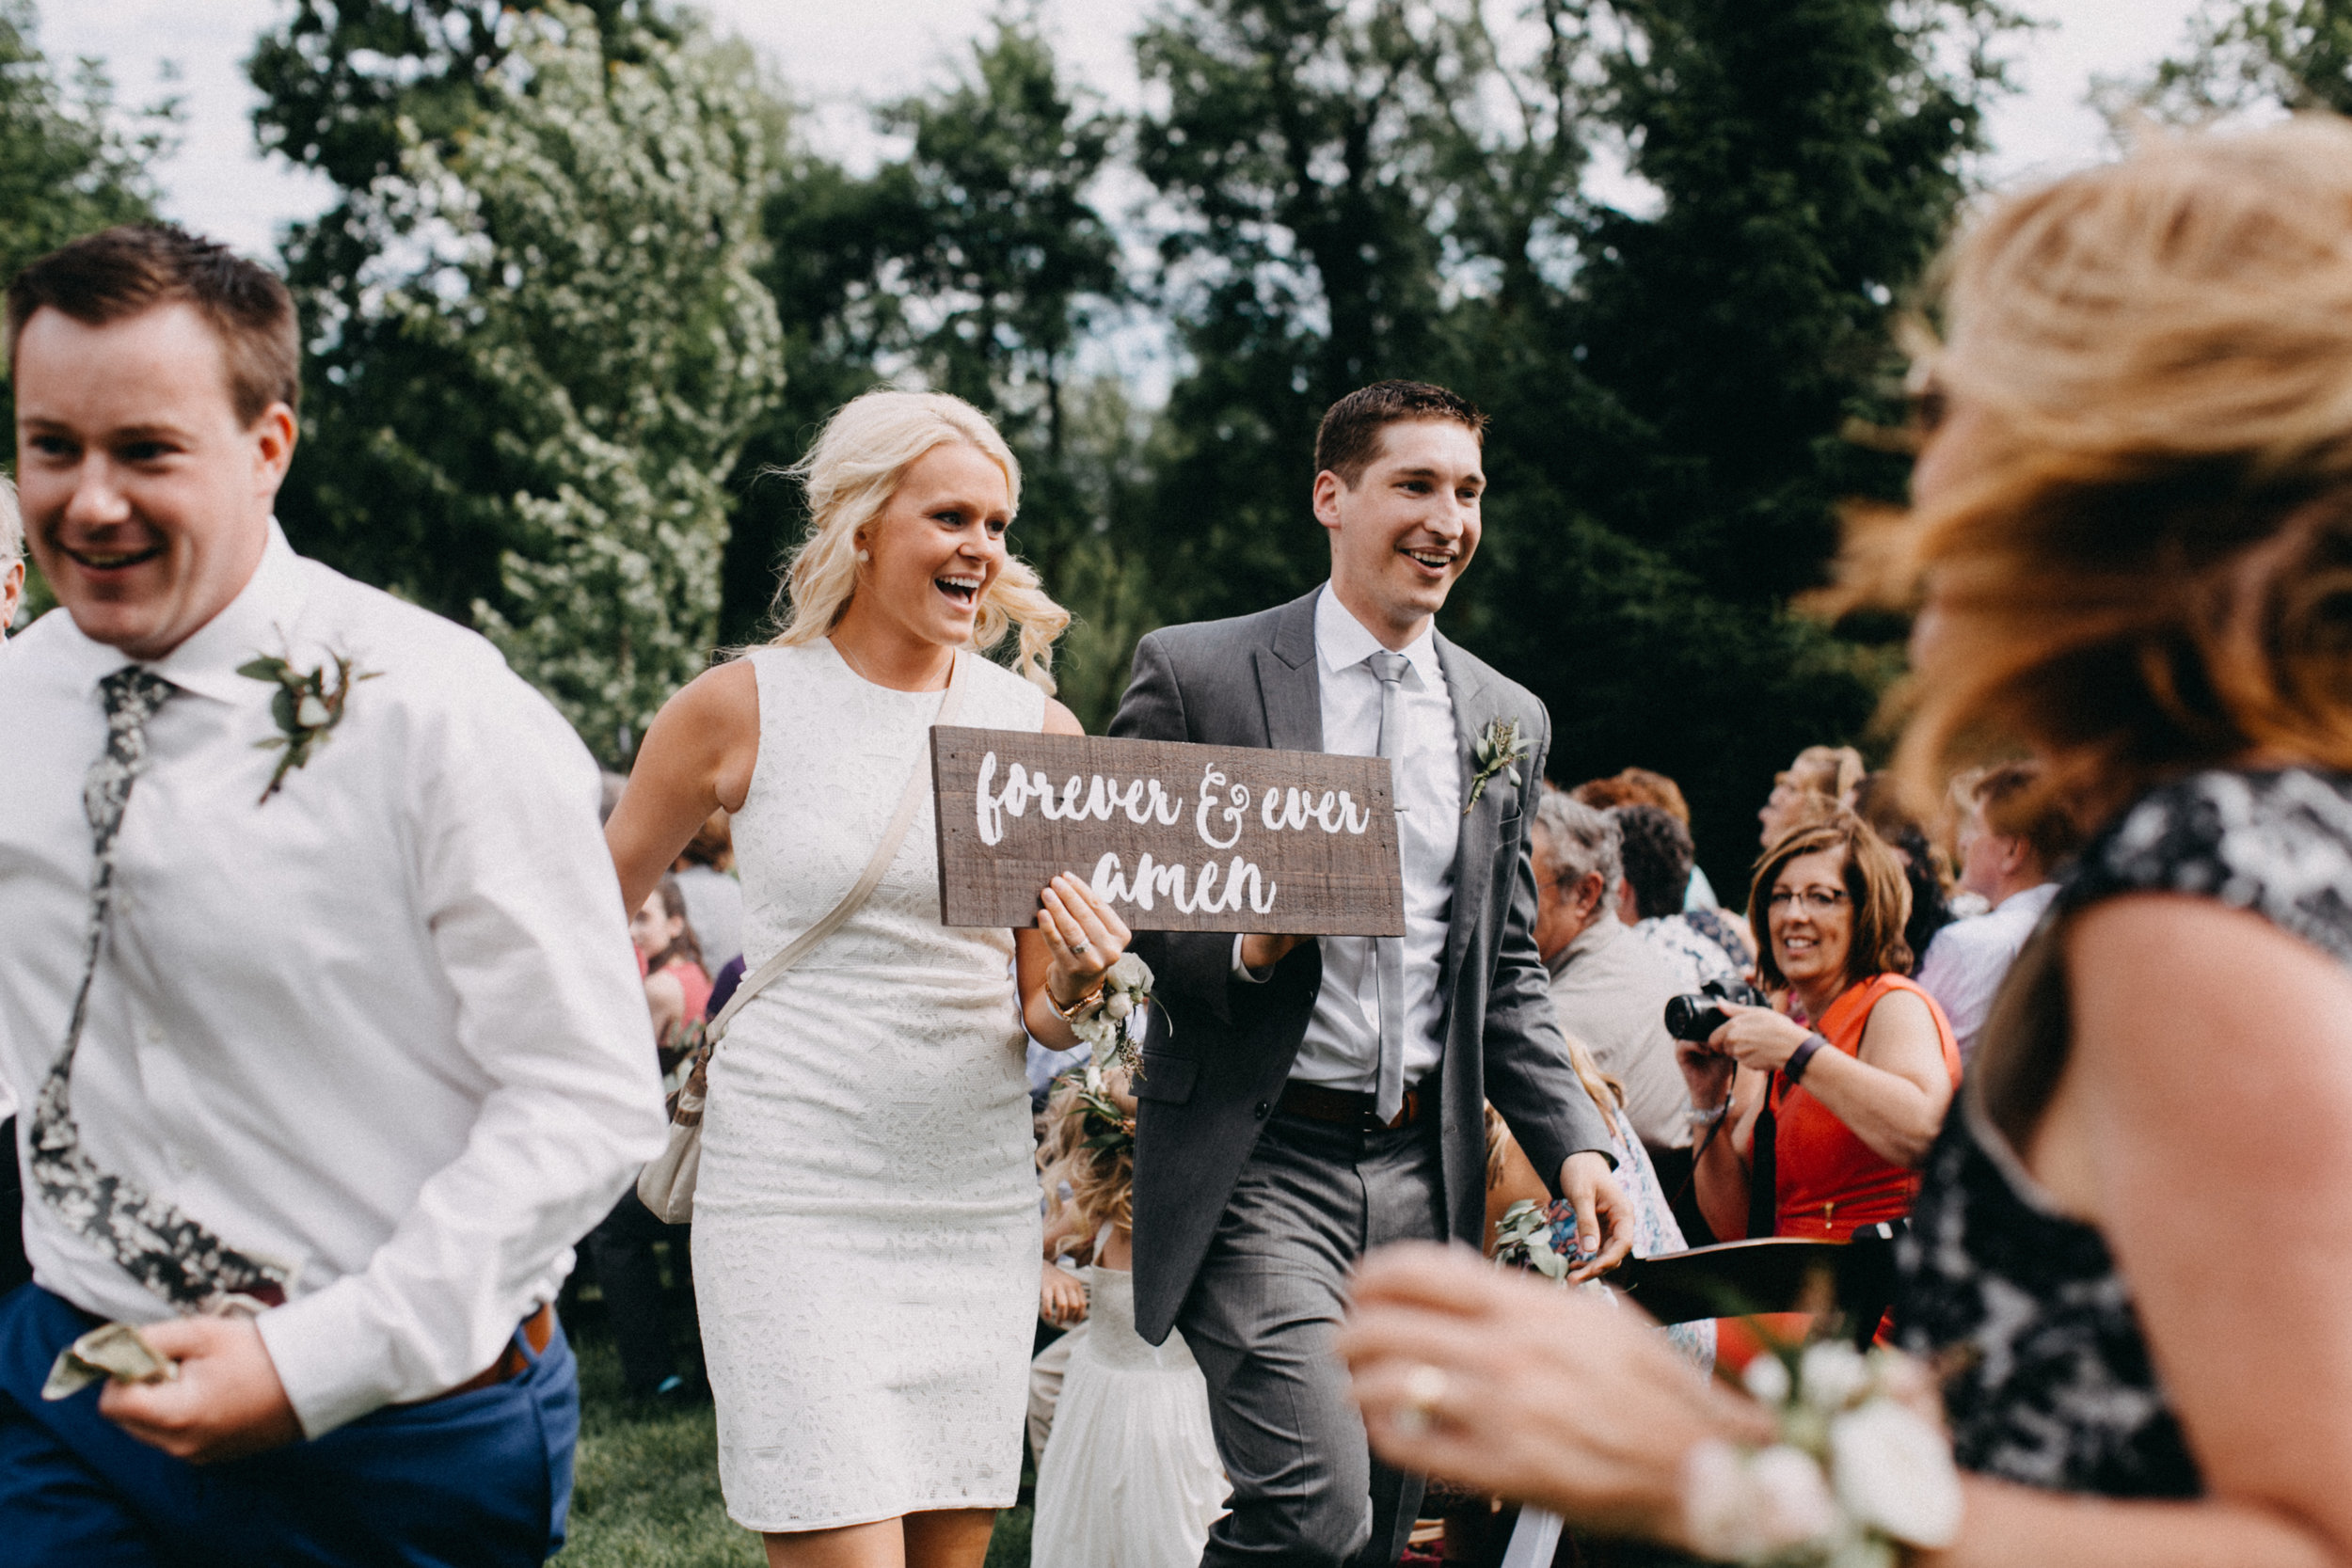 Wedding at Creekside Farm in Rush City, Minnesota photographed by Britt DeZeeuw